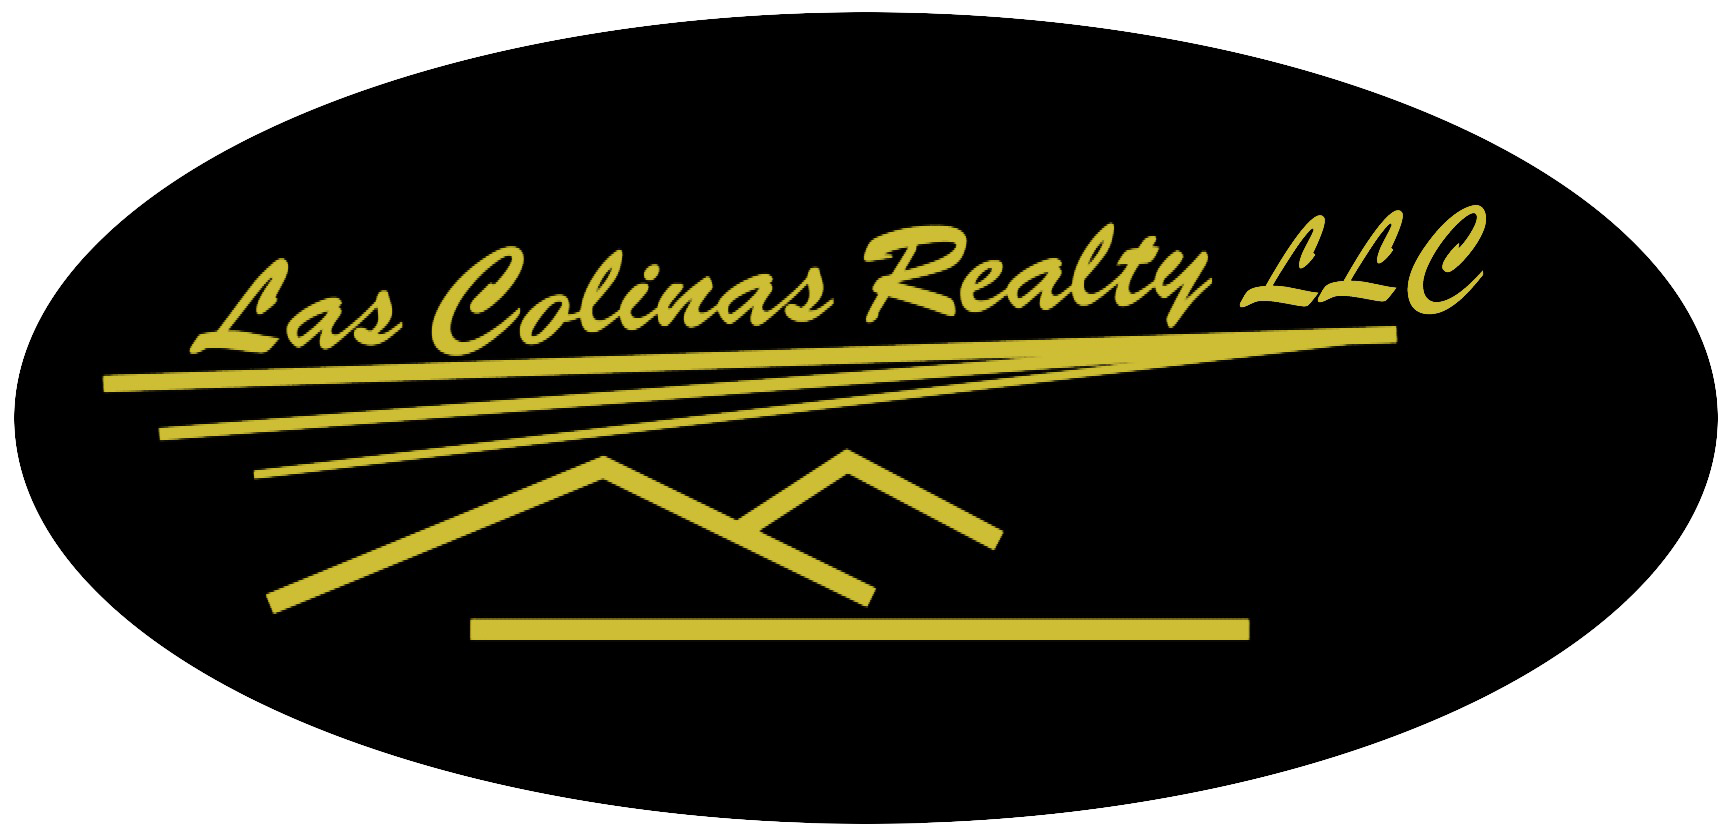 Las colinas realty llc logo black